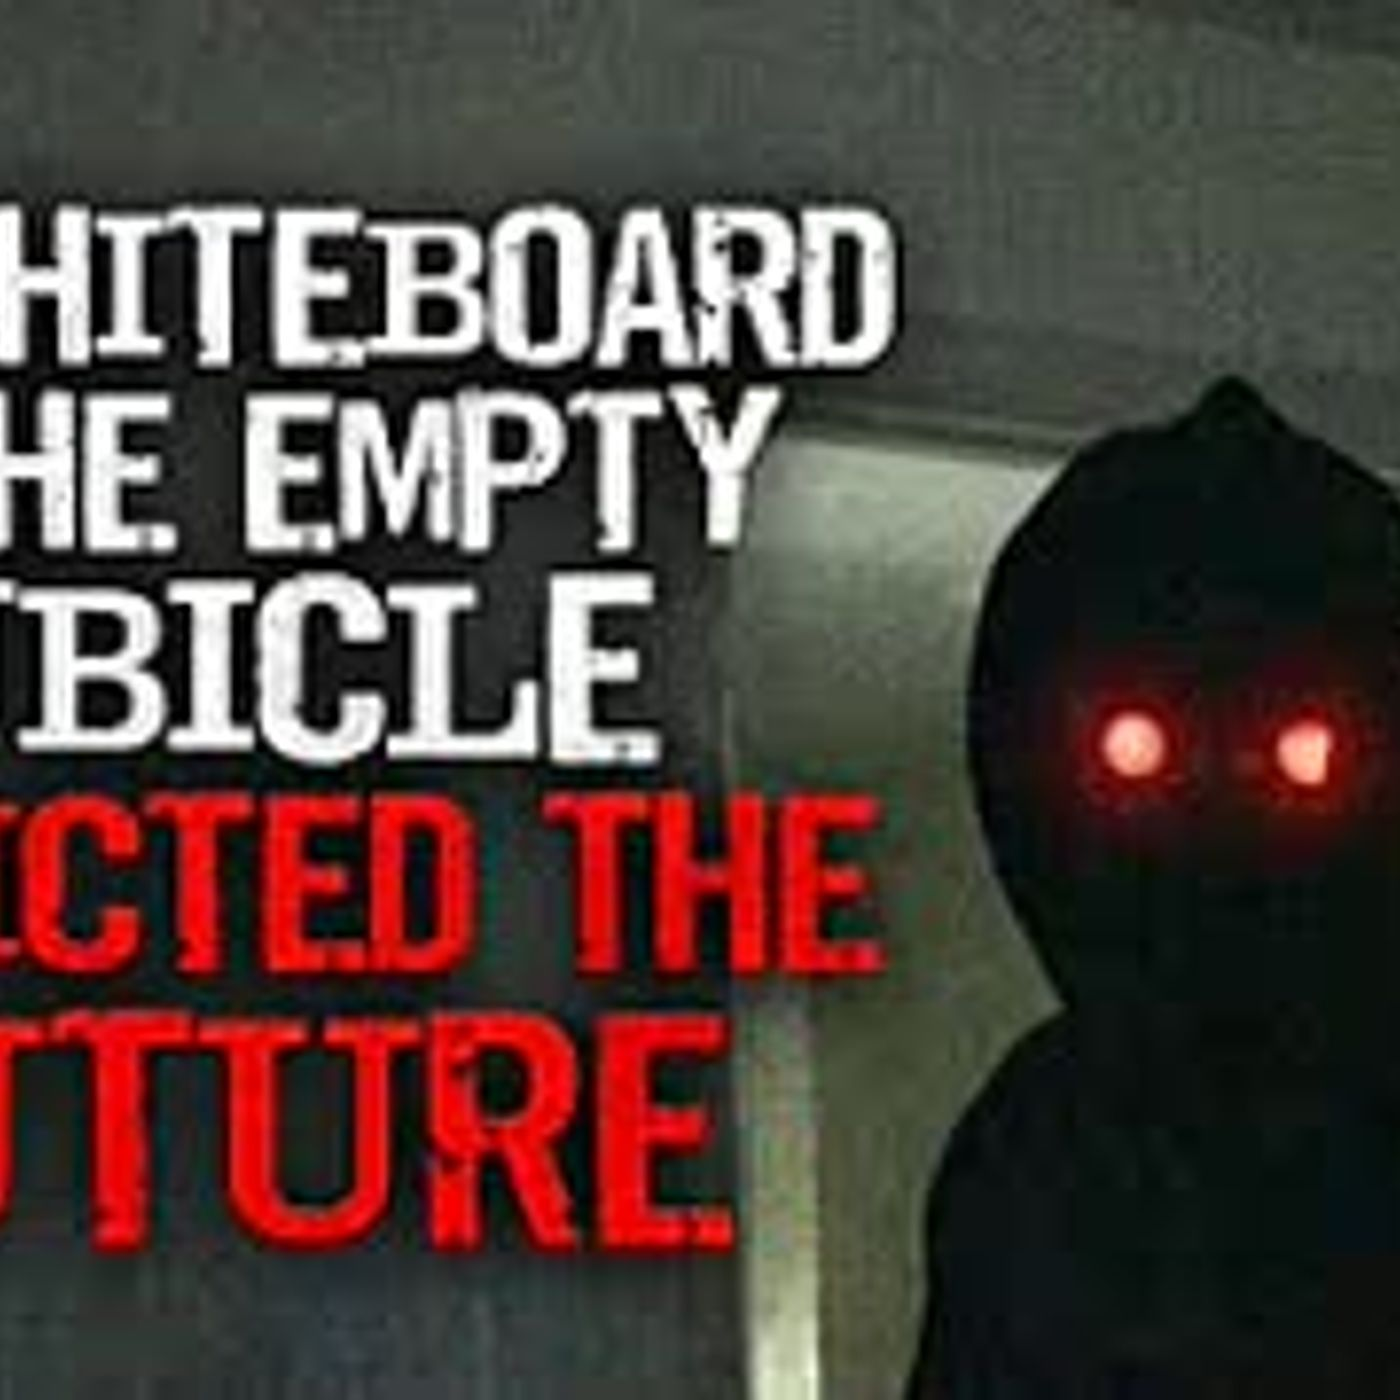 """The Whiteboard in the Empty Cubicle Predicted The Future"" Creepypasta"